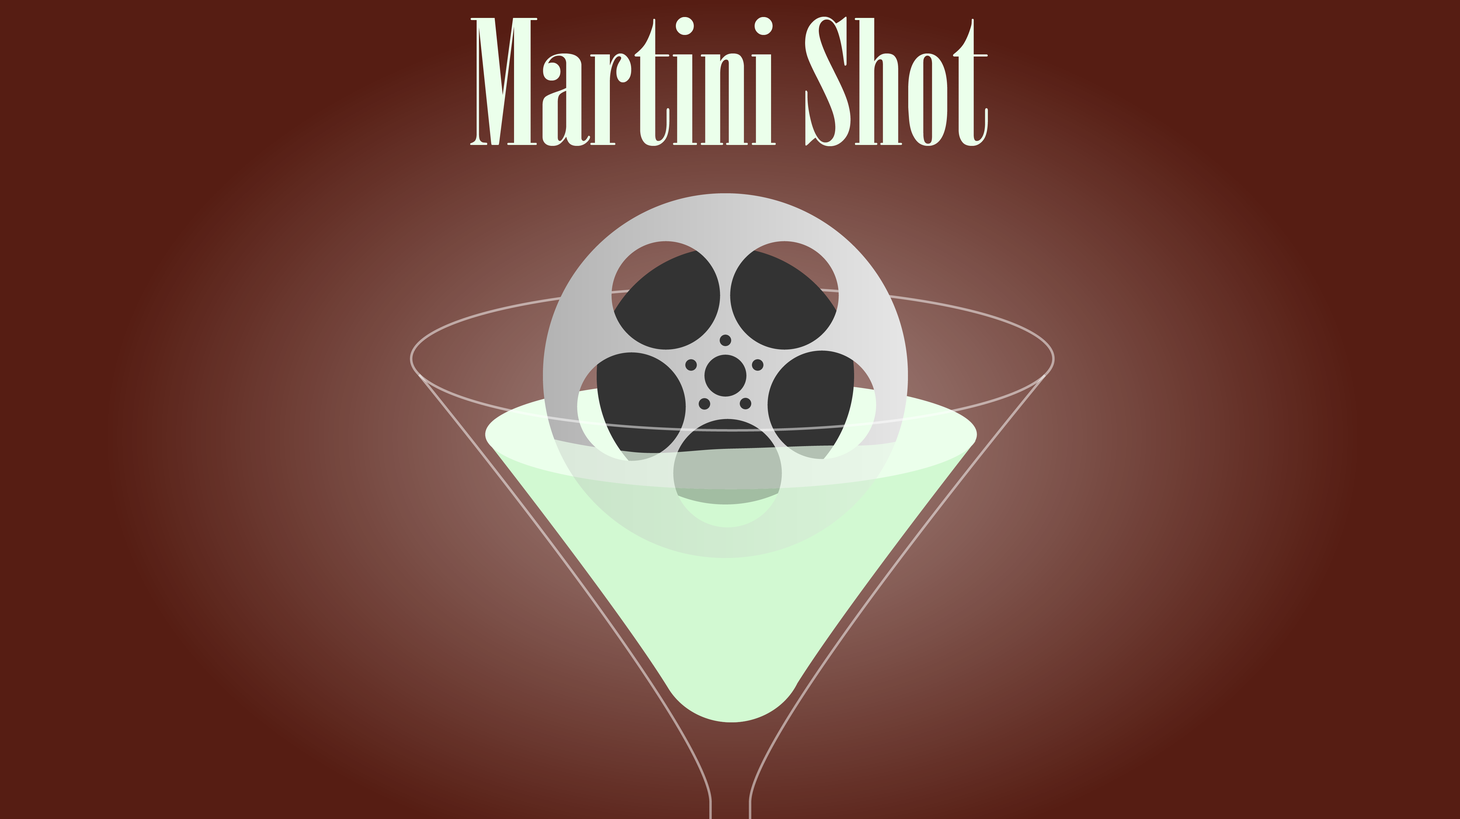 This is Rob Long, and on today's Martini Shot I try to teach a writing class and fail to properly refuse the call, mirror the resolution, or find the pinch point. And apparently that's what writing is all about.